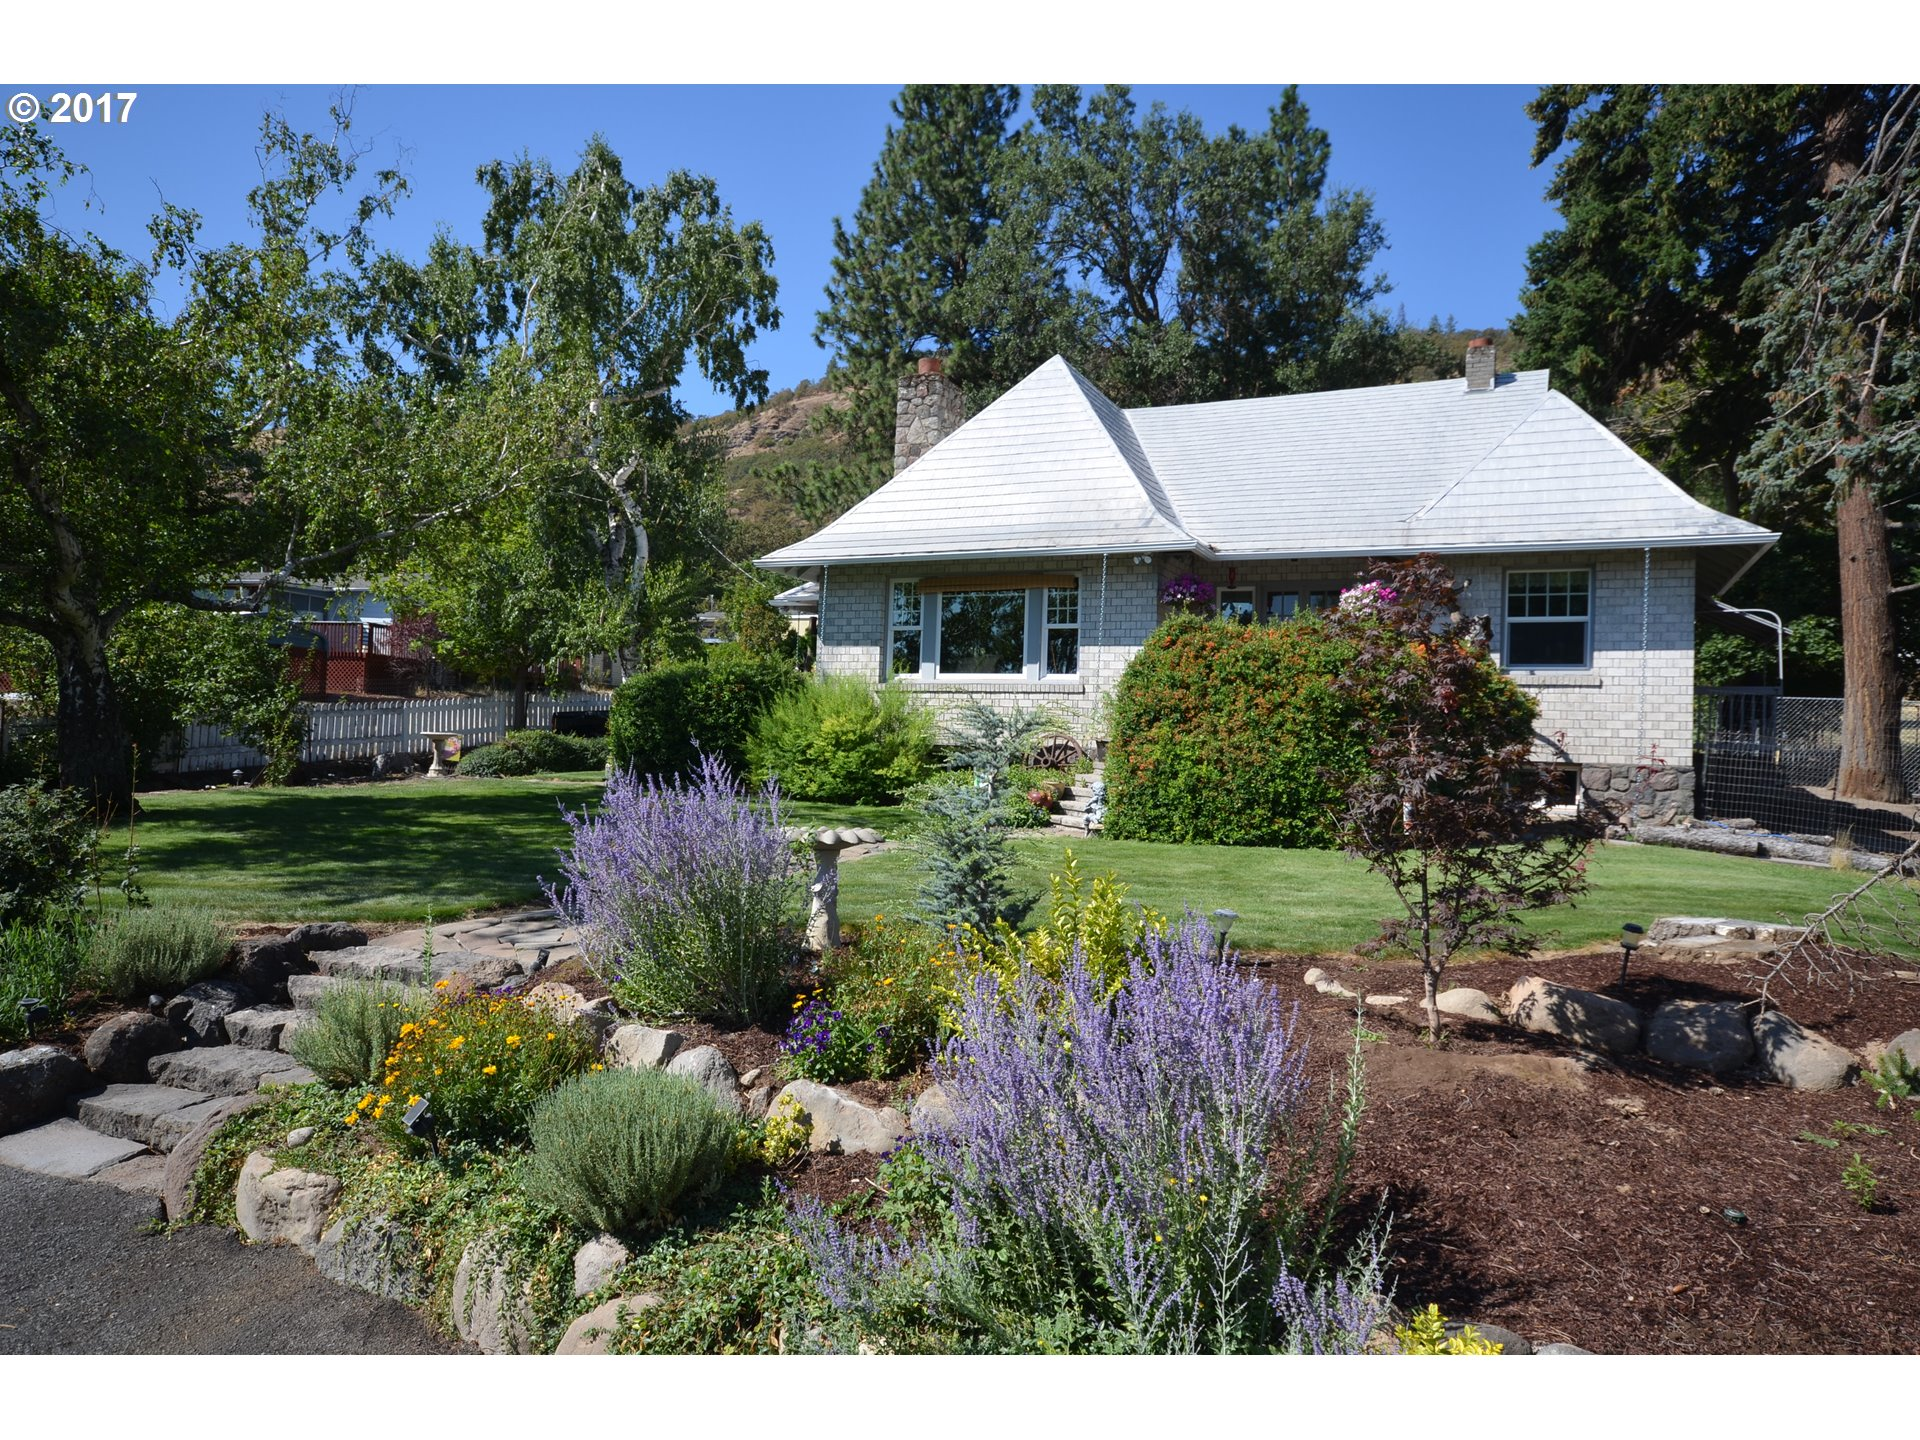 2724 W 10TH, The Dalles, OR 97058